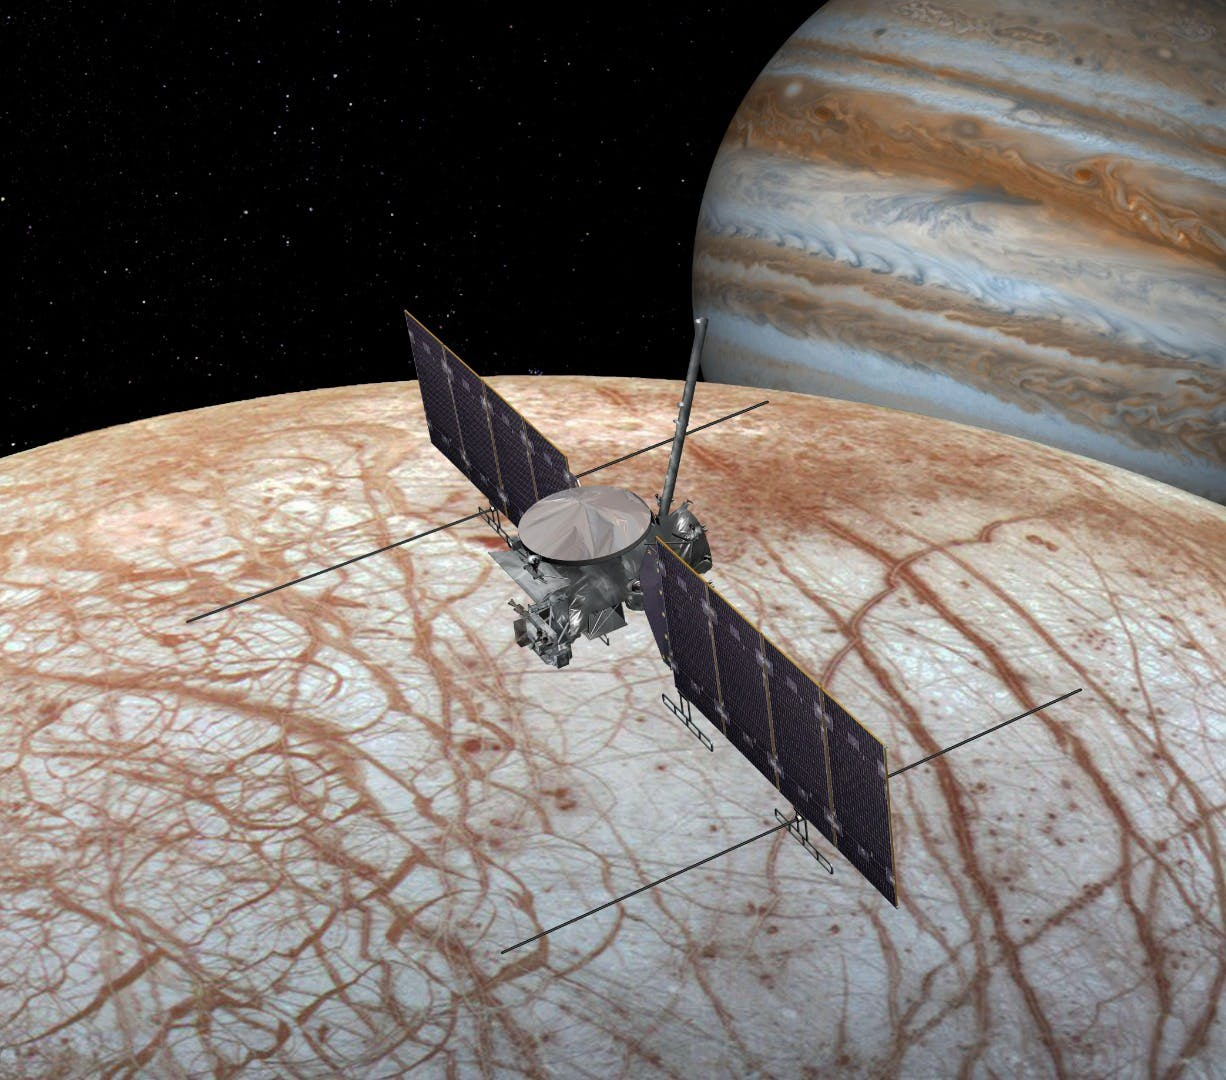 NASA confirms Europa Clipper mission to study Jupiter's icy moon